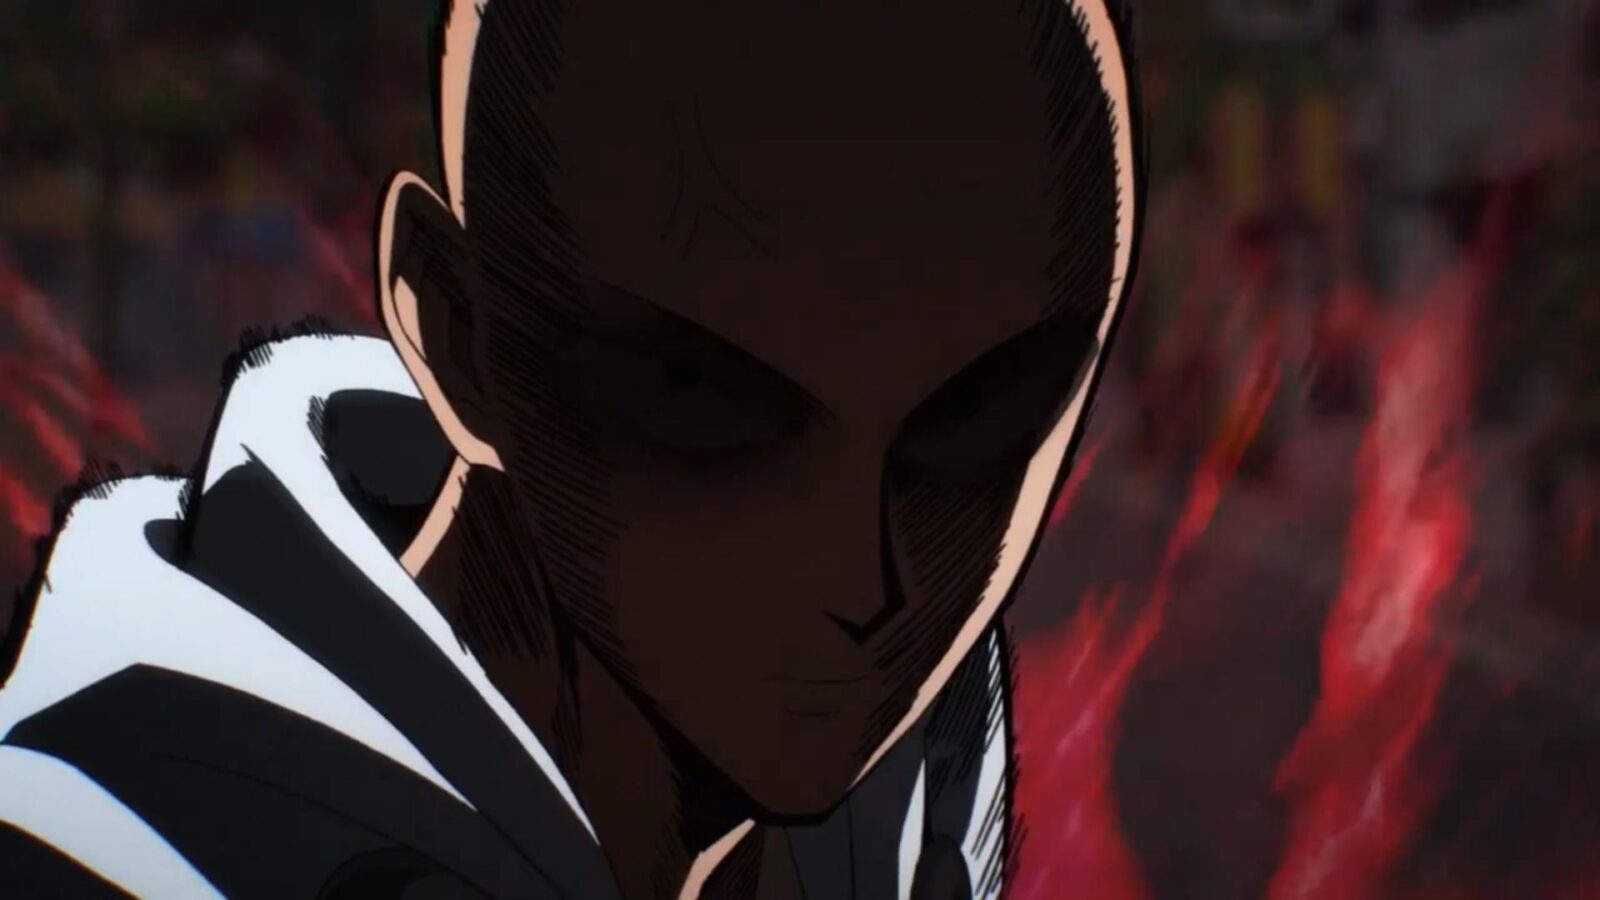 Saitama High Quality wallpapers